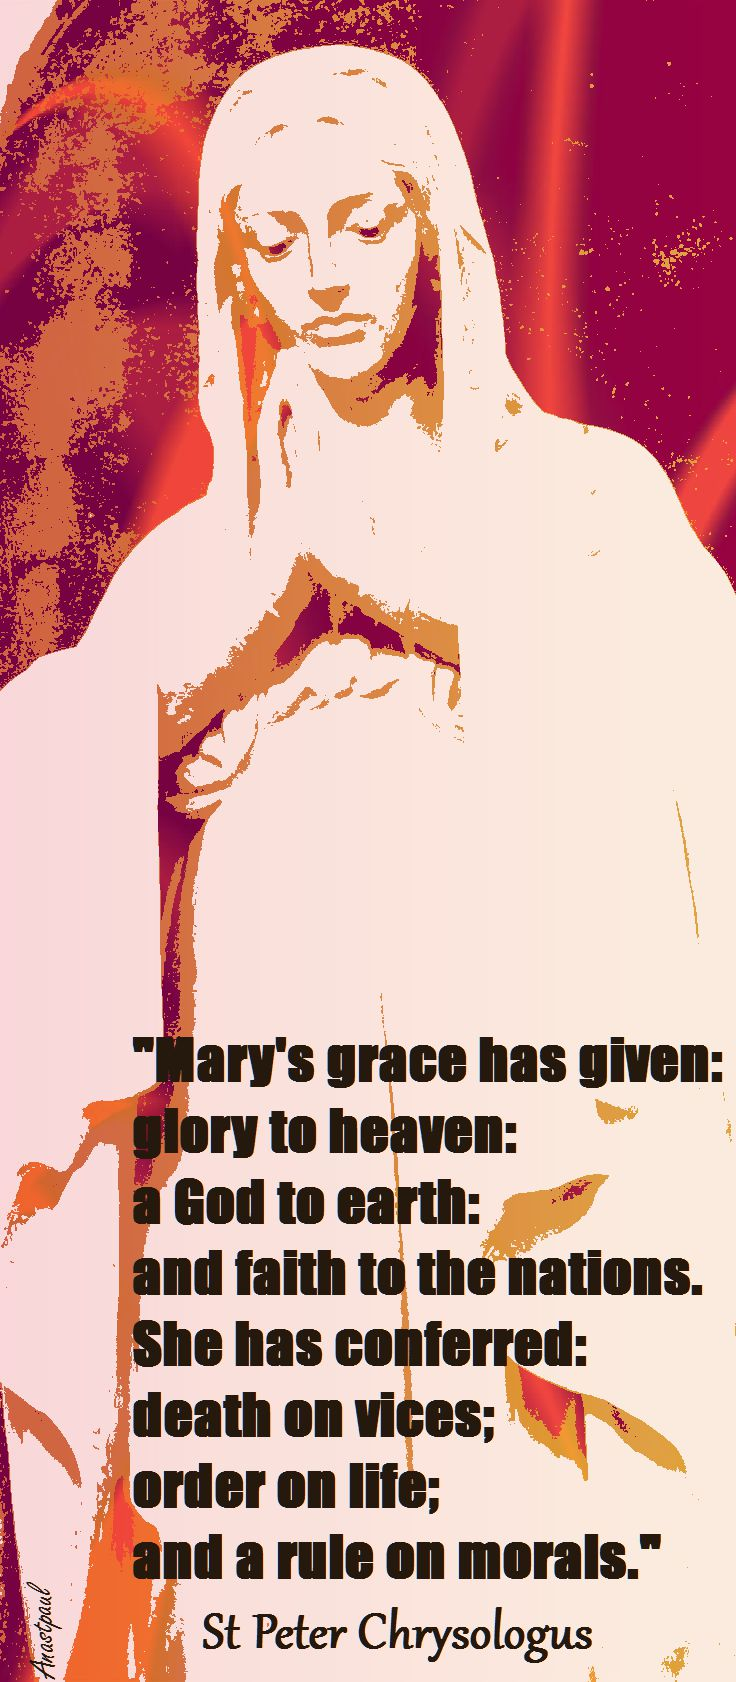 ST PETER CHRYSOLOGUS MARY'S GRACE